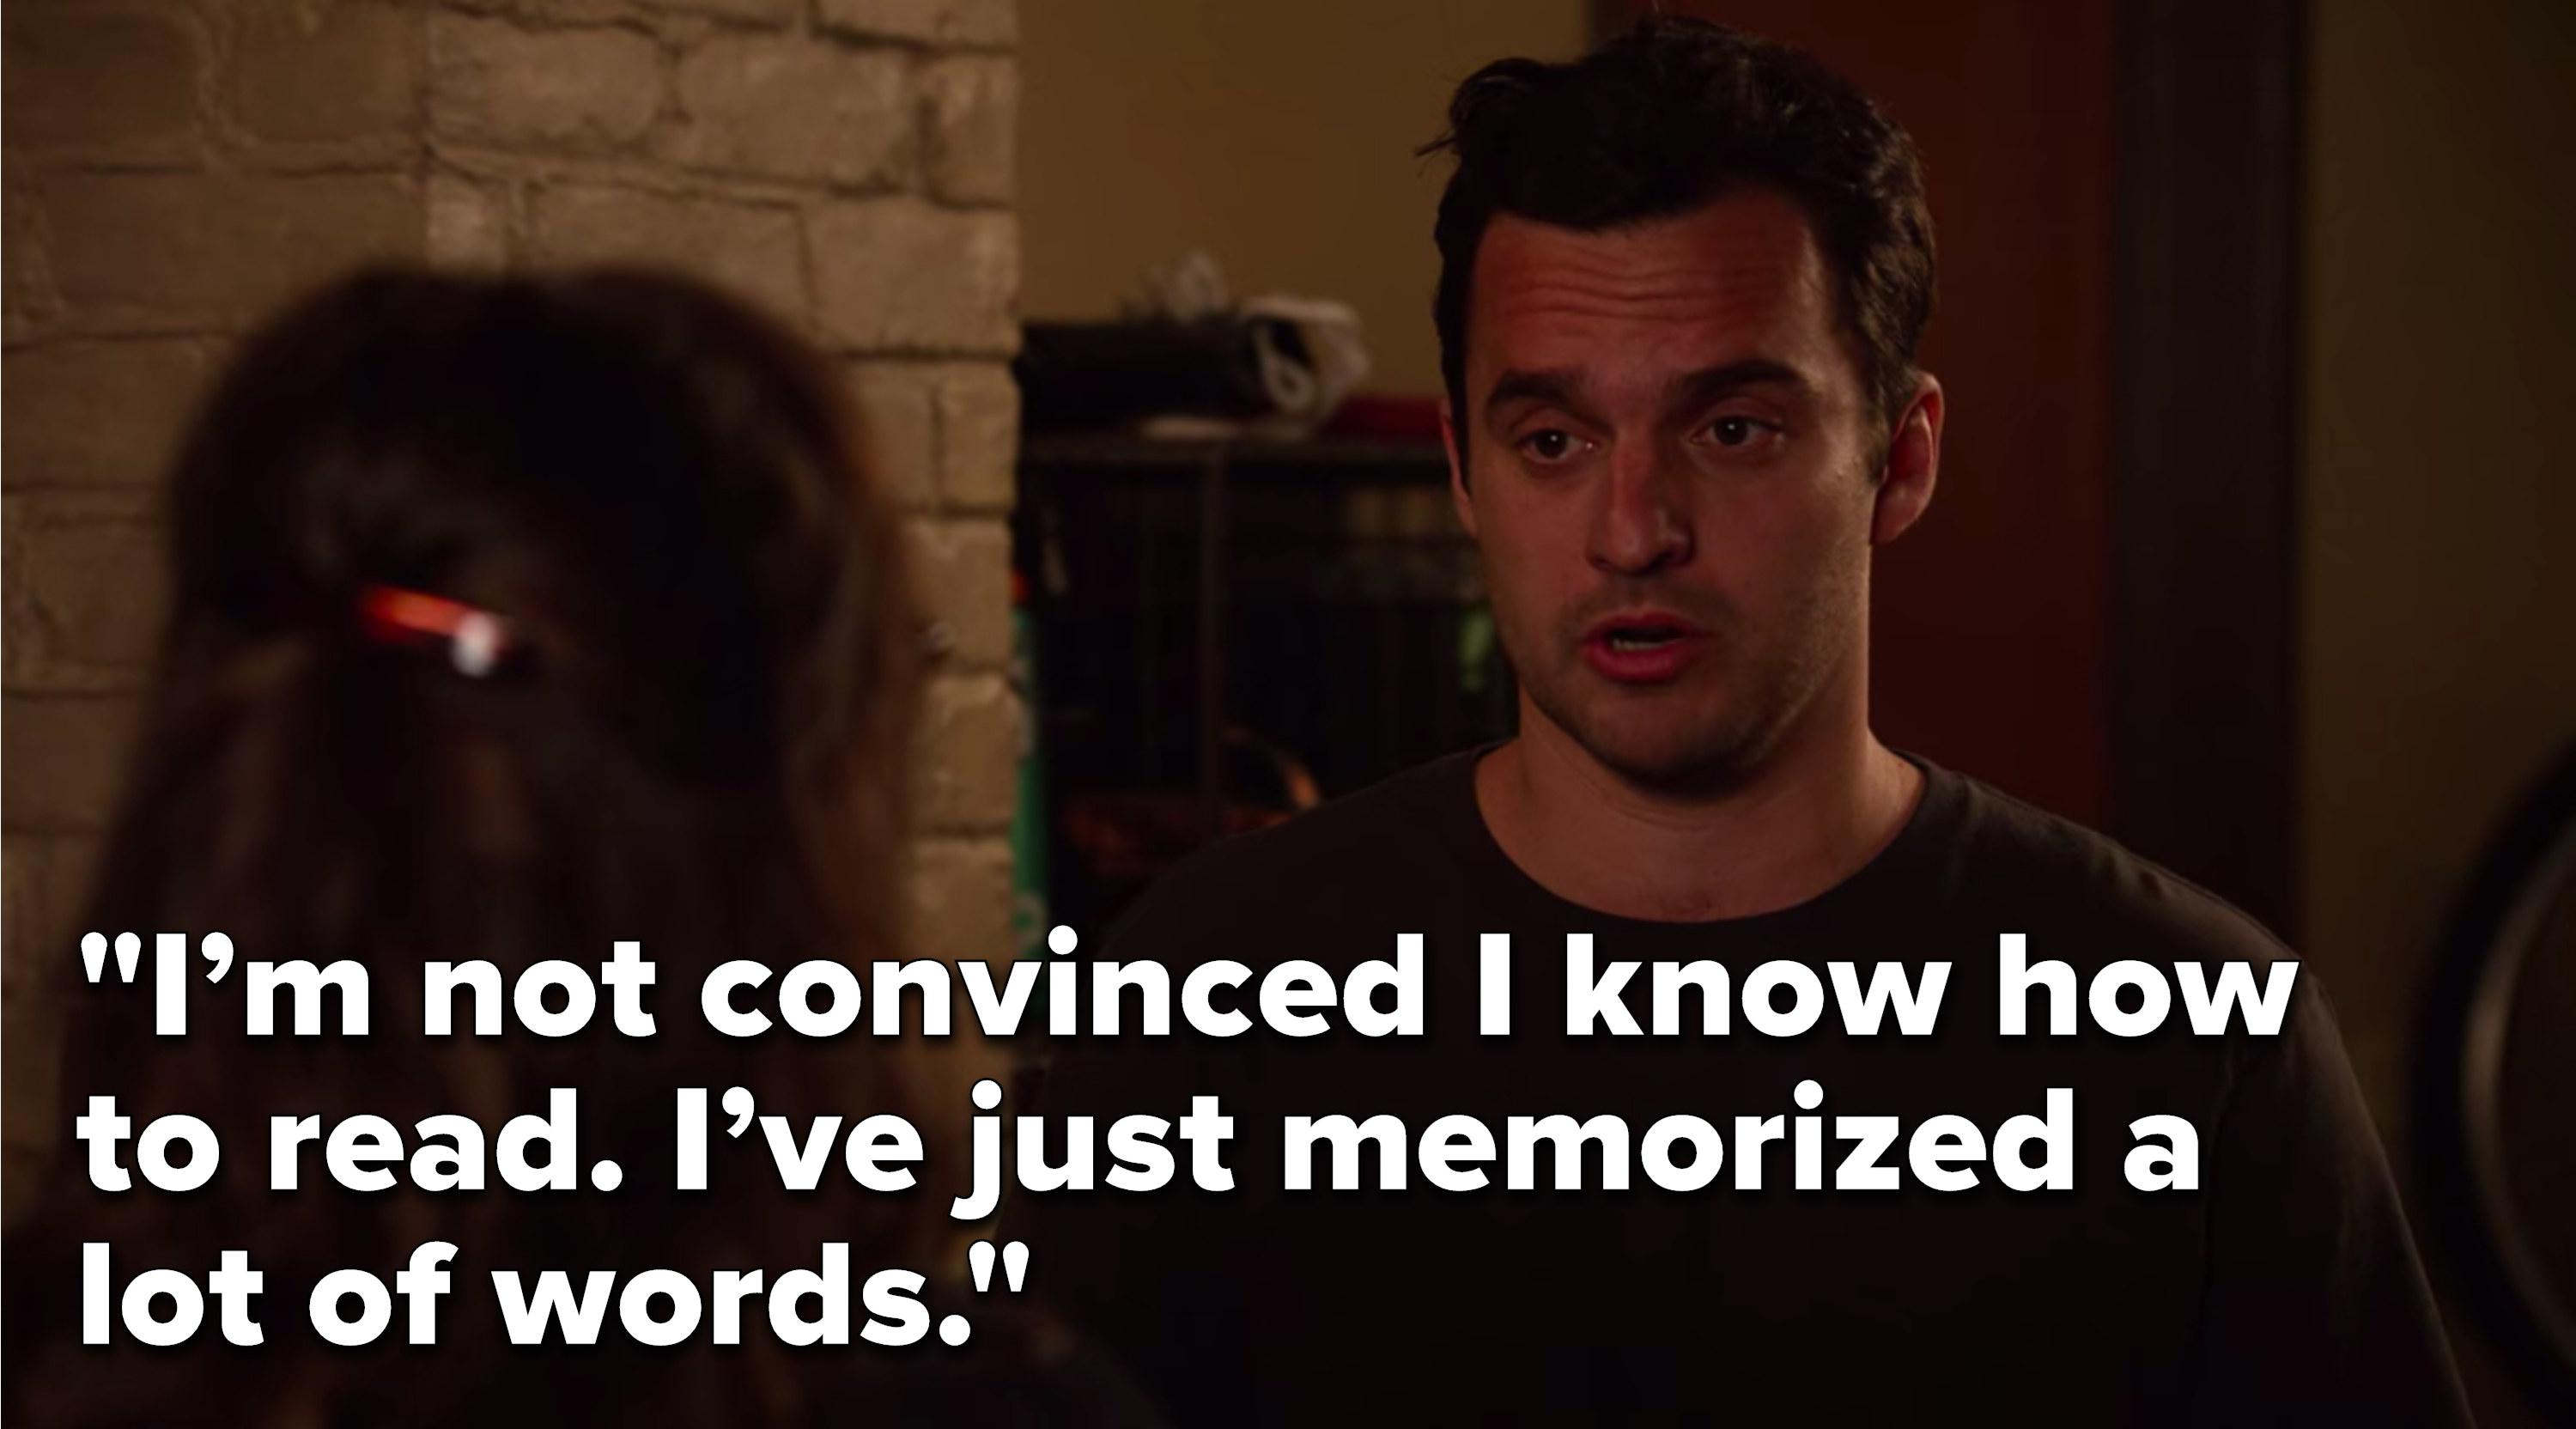 """Nick says, """"I'm not convinced I know how to read, I've just memorized a lot of words"""""""